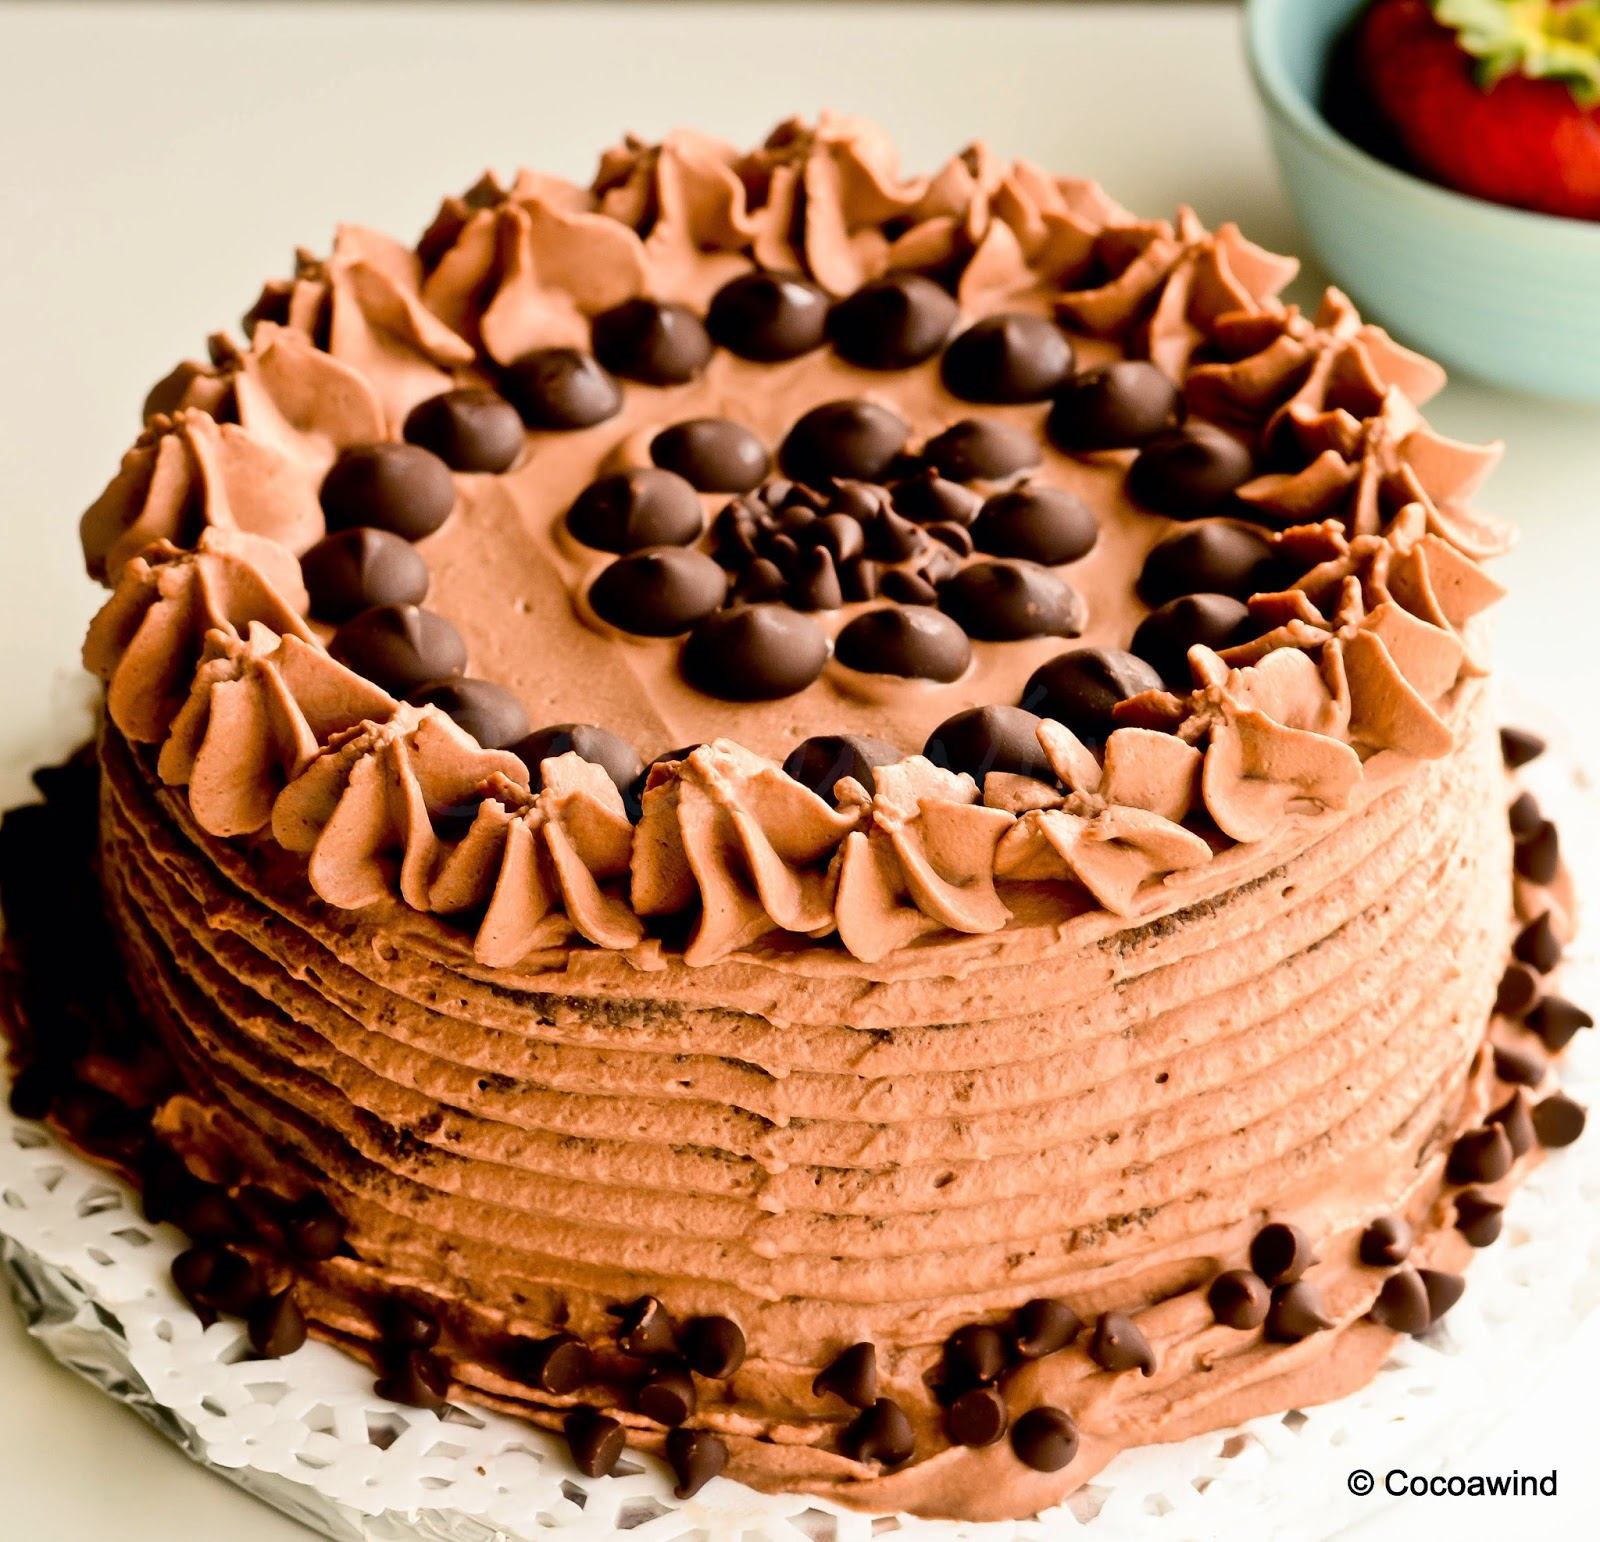 Moist Chocolate Cake with Mocha Whipped Cream Frosting